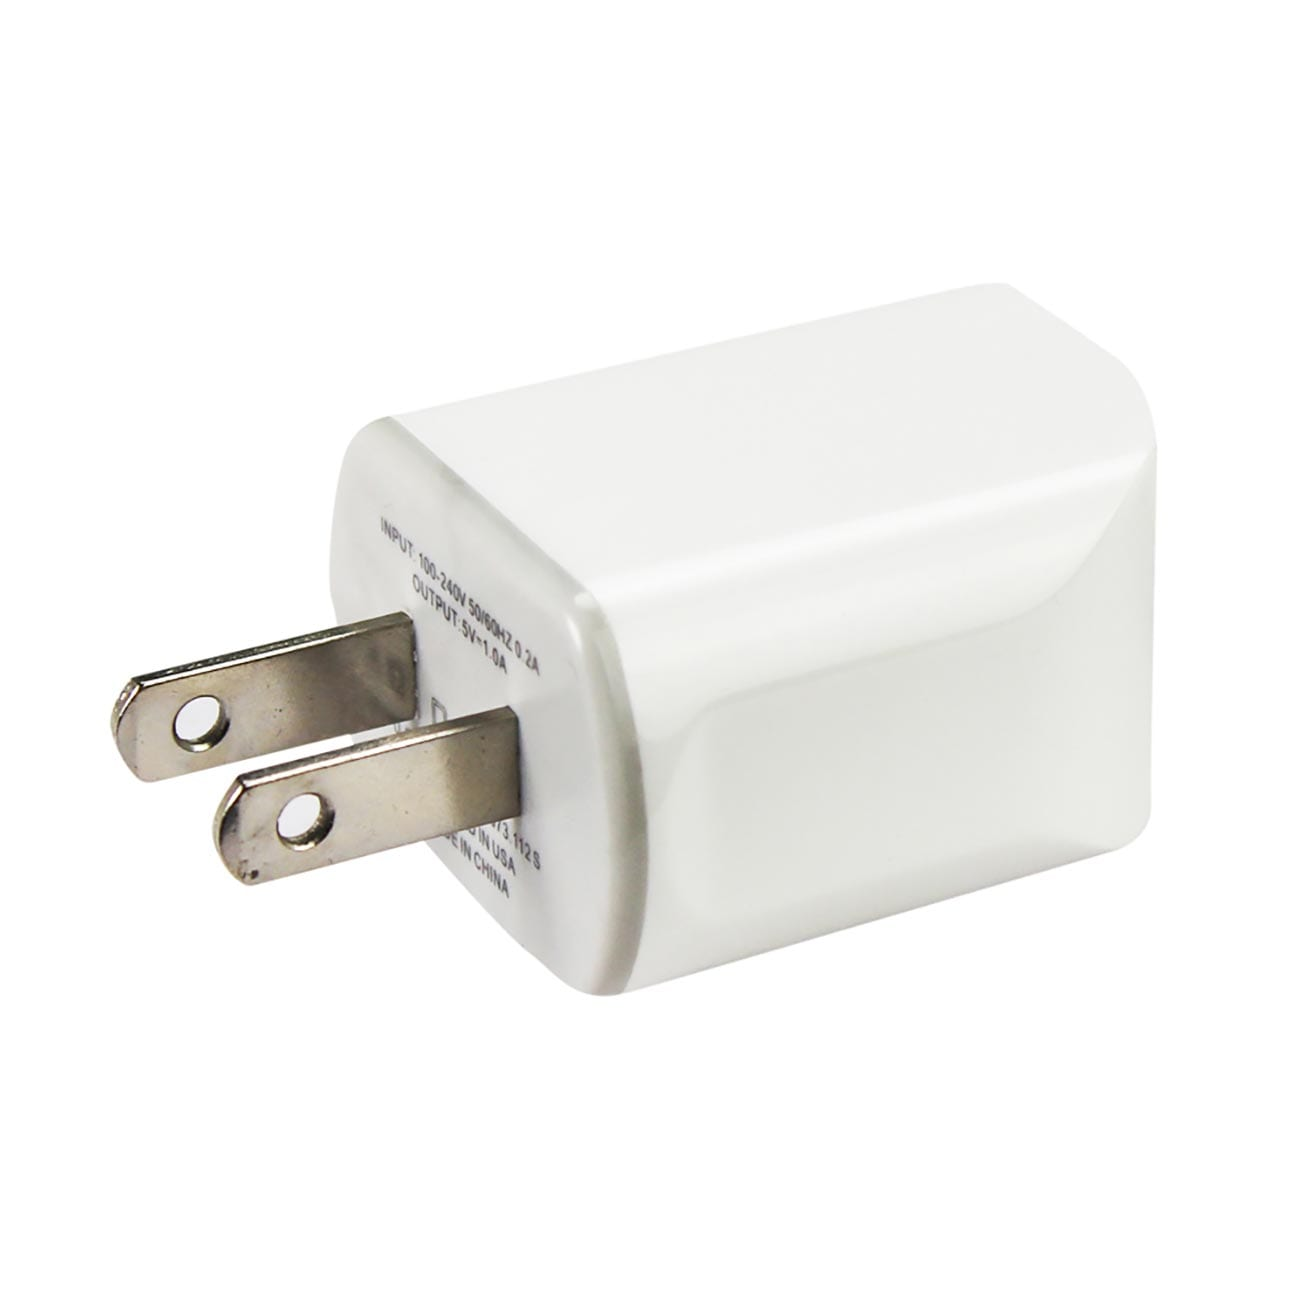 MICRO USB 1 AMP PORTABLE MICRO TRAVEL ADAPTER CHARGER WITH CABLE IN WHITE